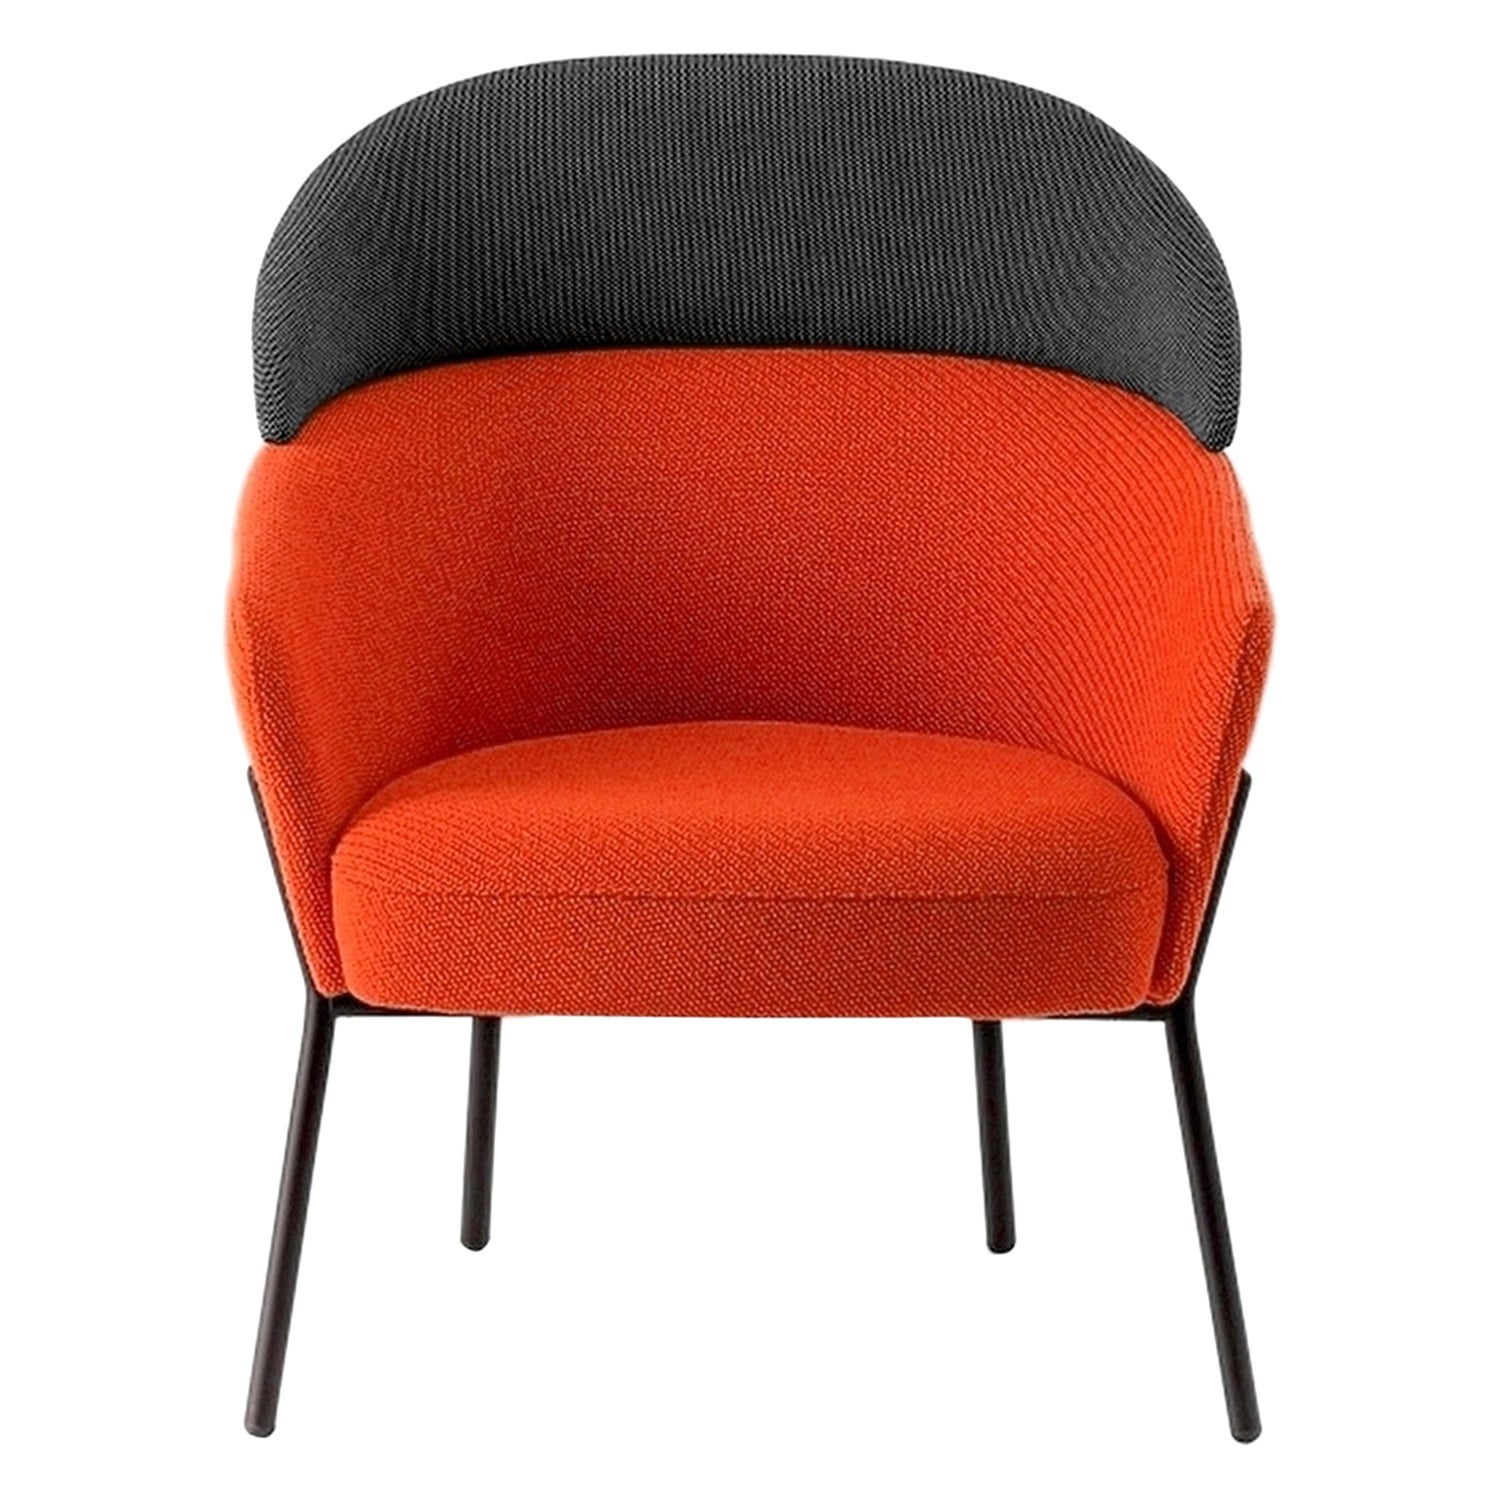 In Stock in Los Angeles, Red  Wam Lounge Chair by Marco Zito, Made in Italy